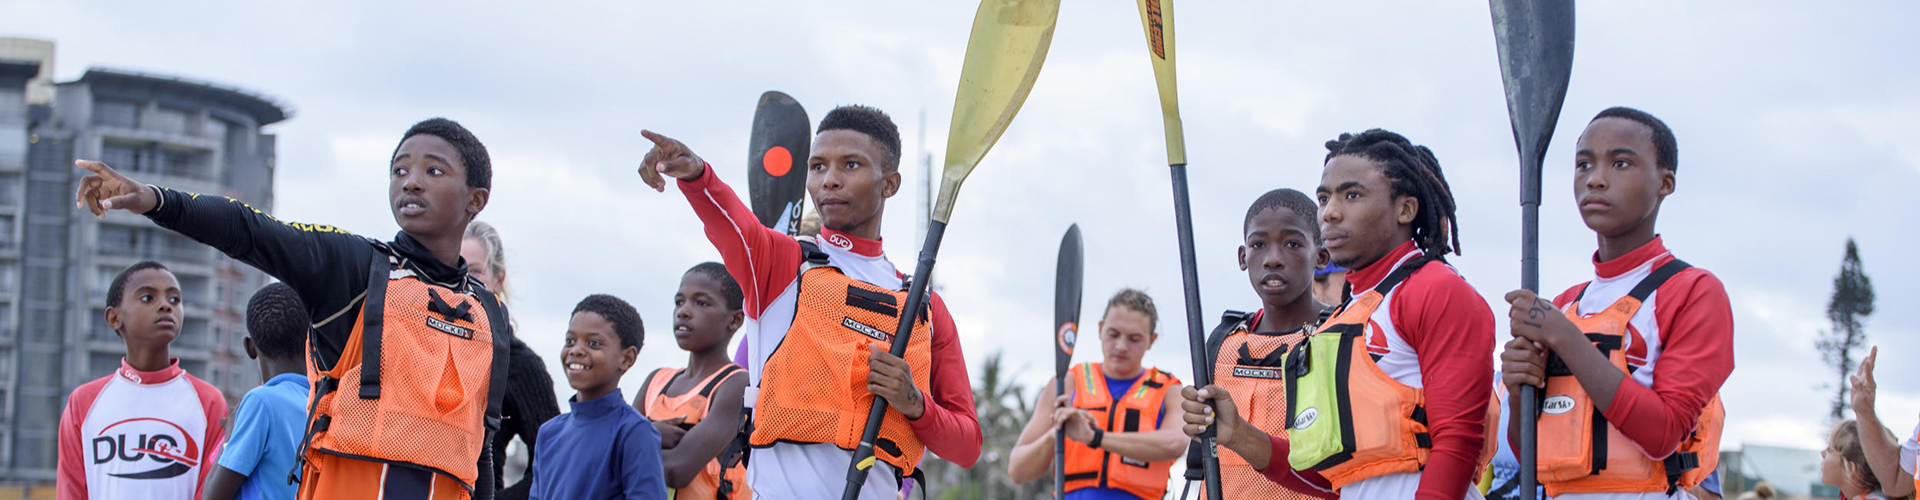 Umnini development paddlers star